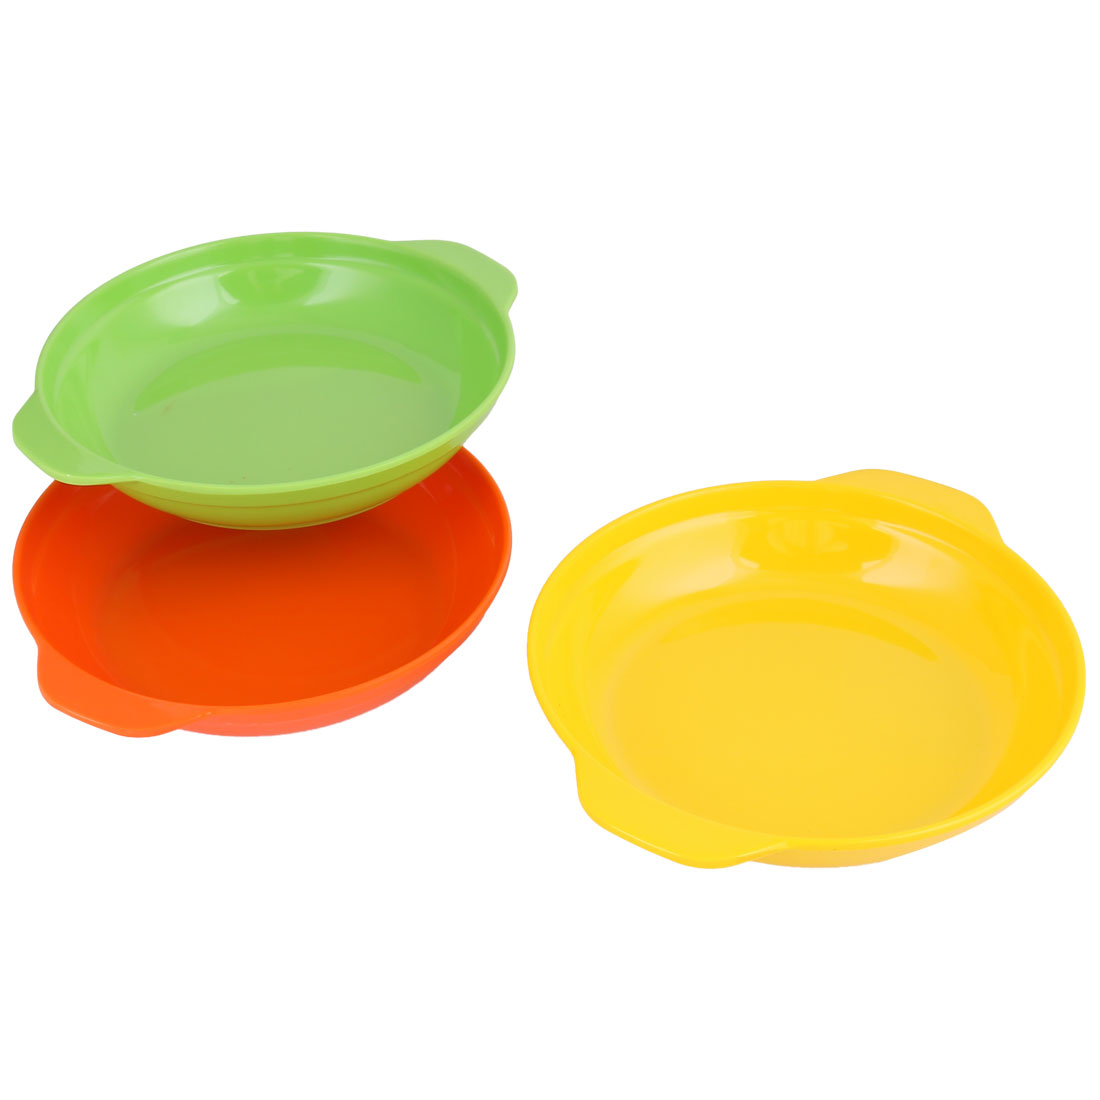 Kitchen Tableware Plastic Serving Dinner Tray Food Fruit Nuts Holder Plate 3pcs